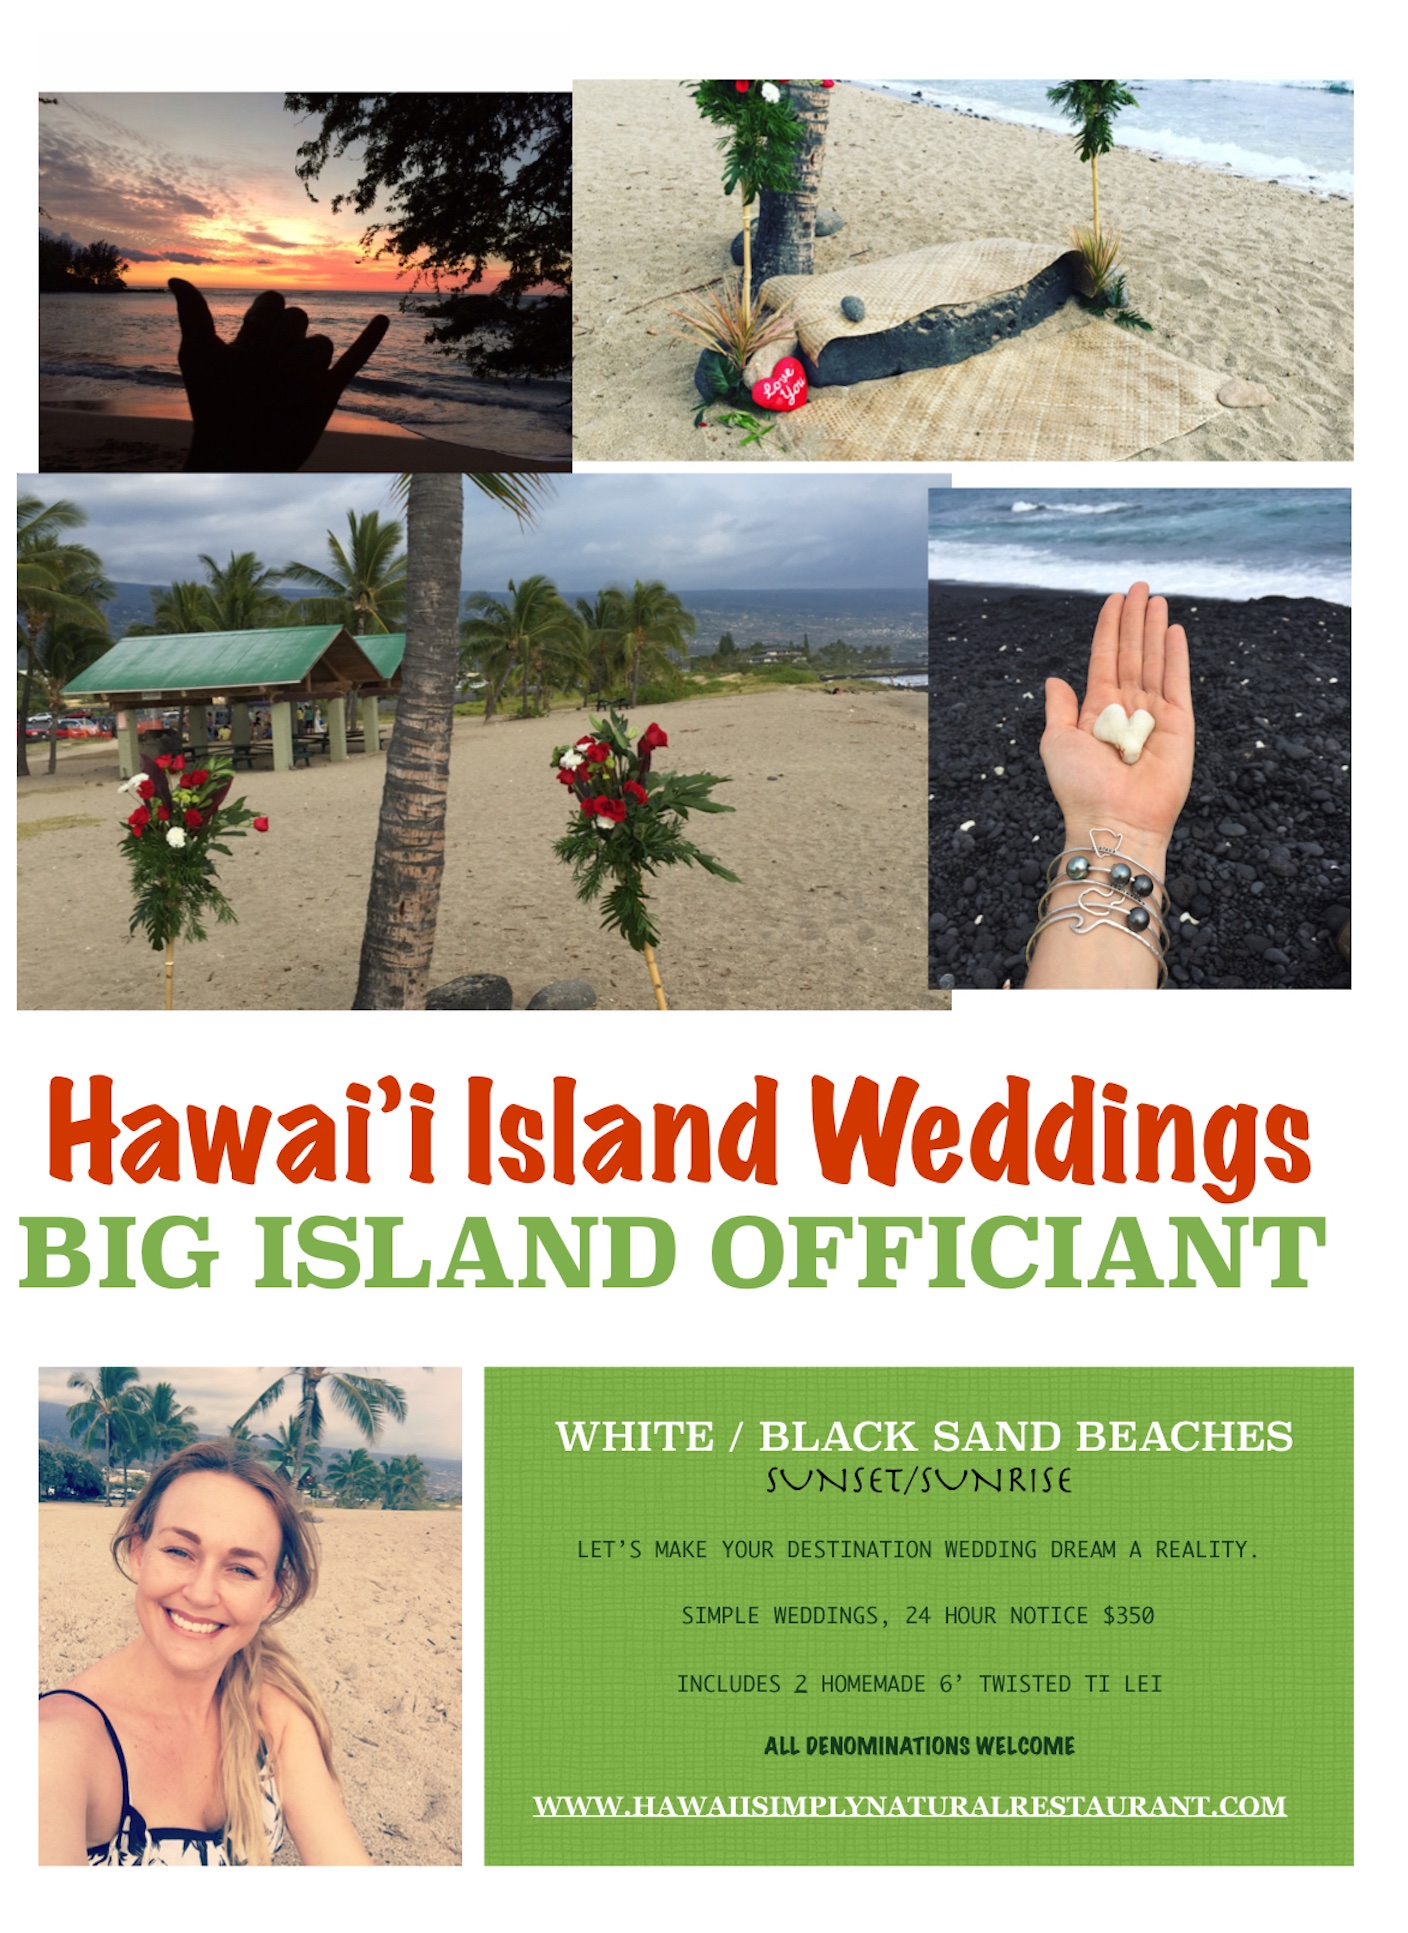 HAWAII ISLAND WEDDING OFFICIANT